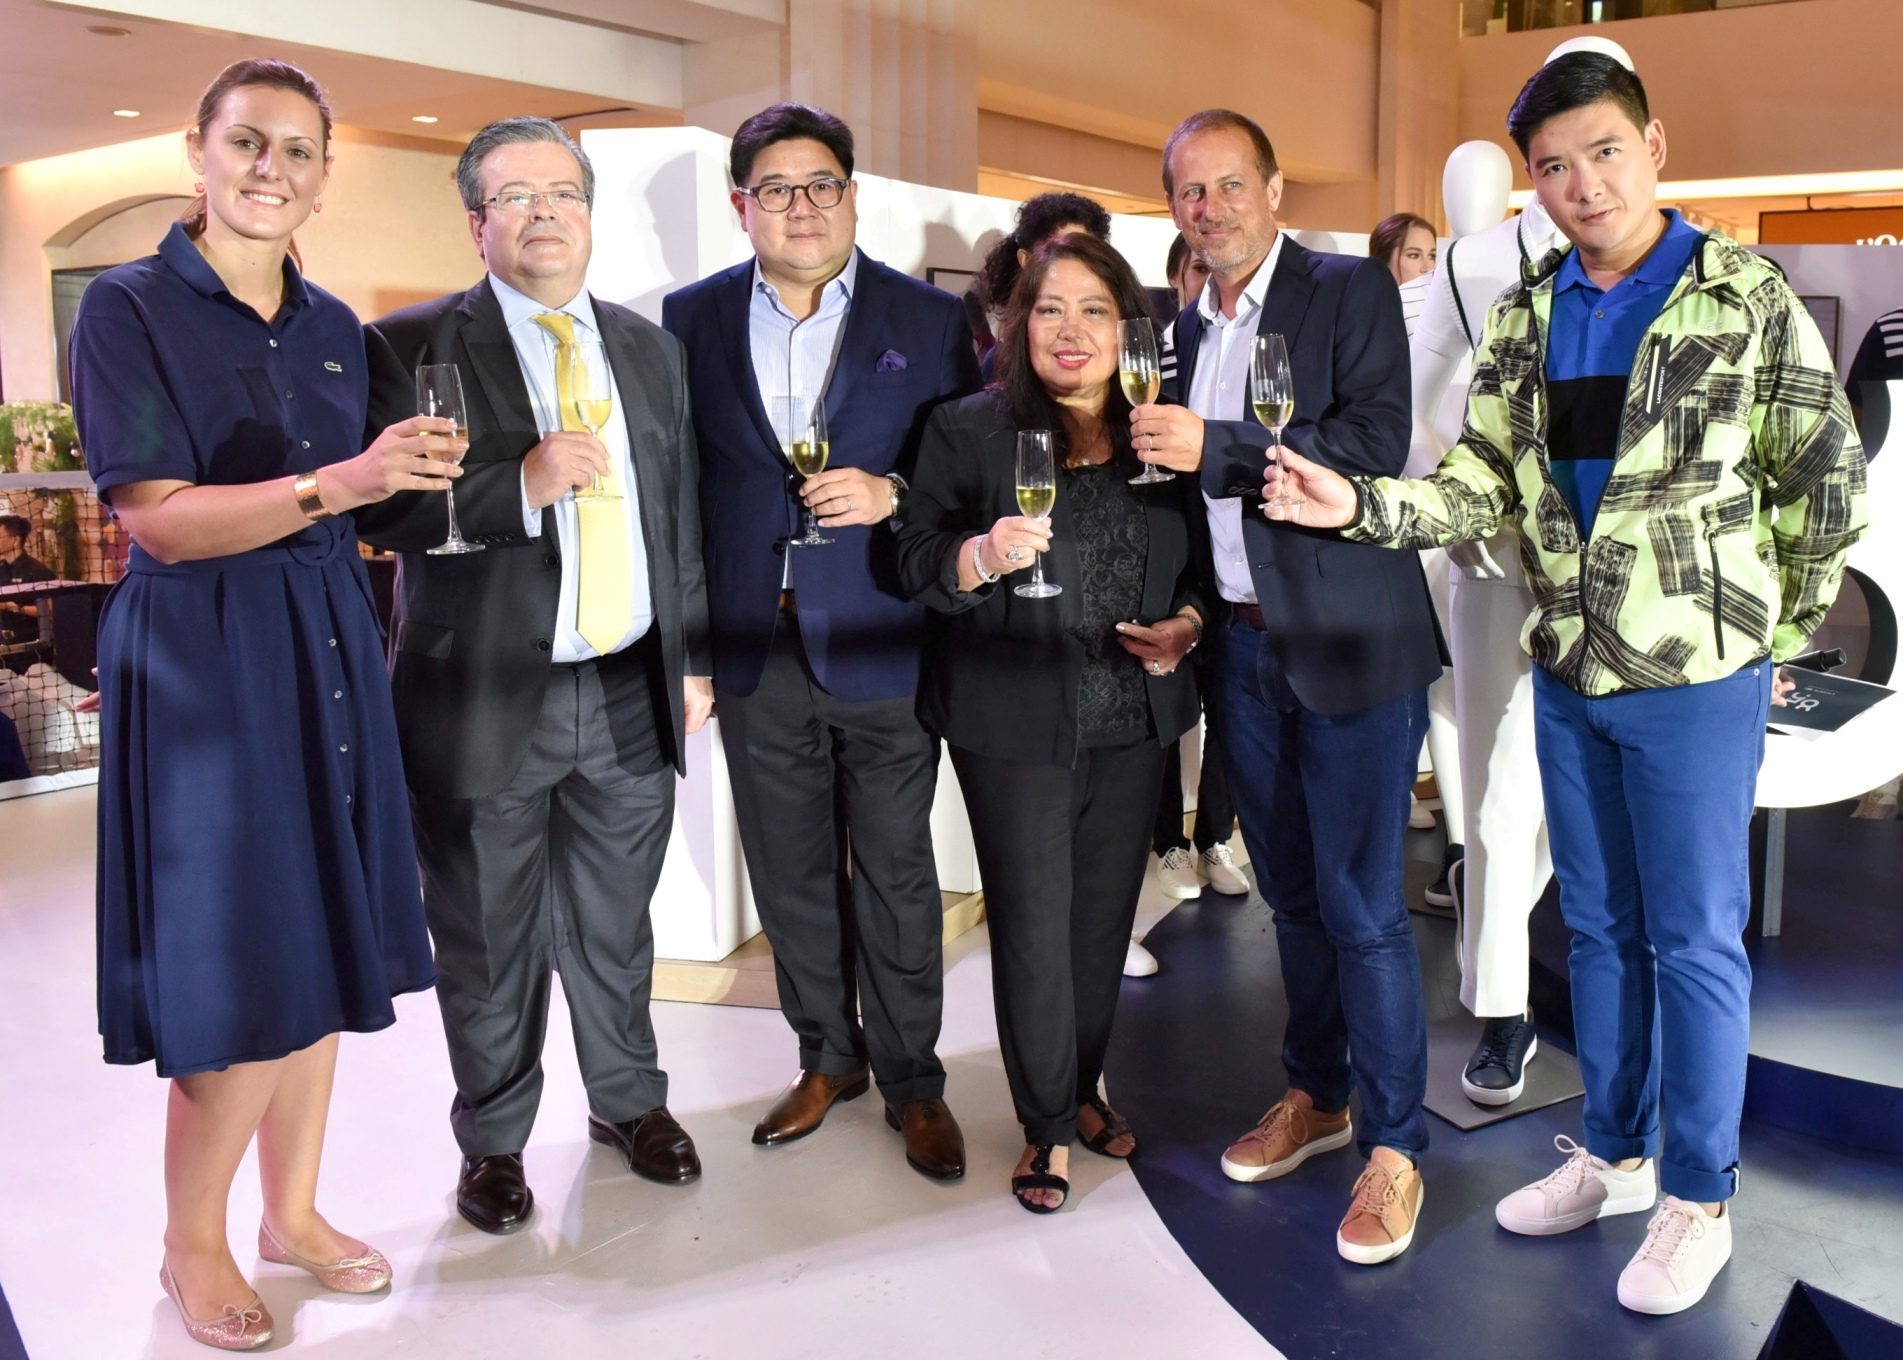 Lacoste Marketing Director Jessy Baretta, Ambassador of France H.E. Nicolas Galey, SSI Group, Inc. President Anton Huang, SSI Group, Inc. Executive Vice President Elizabeth Quiambao, Lacoste Chief Finance Officer Sebastien Fayet, and event host Tim Yap